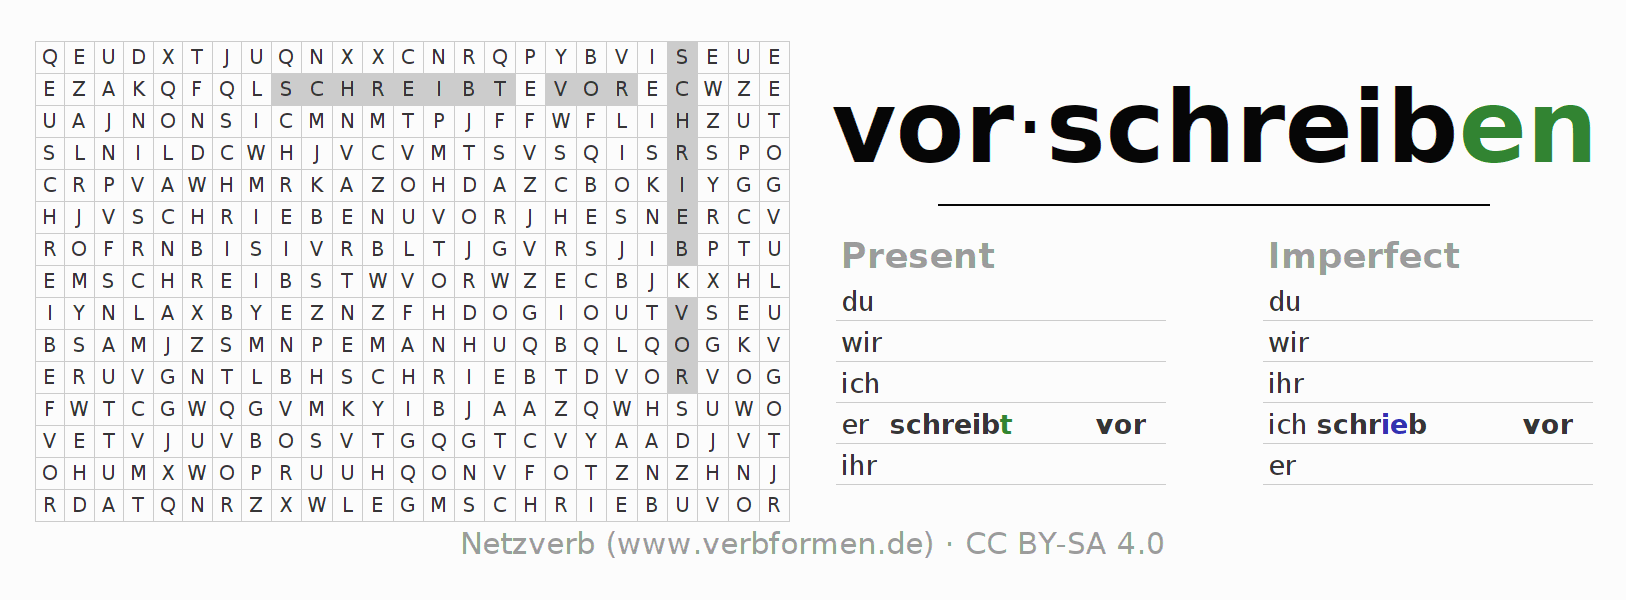 Word search puzzle for the conjugation of the verb vorschreiben